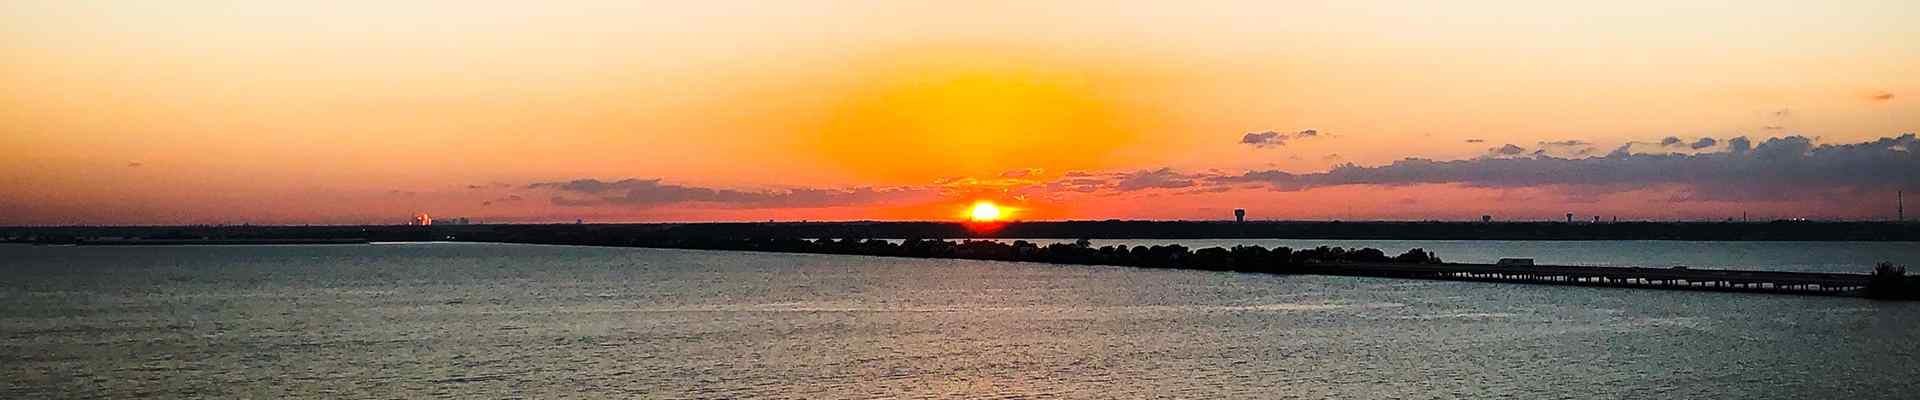 a sunset over the water in rockwall texas